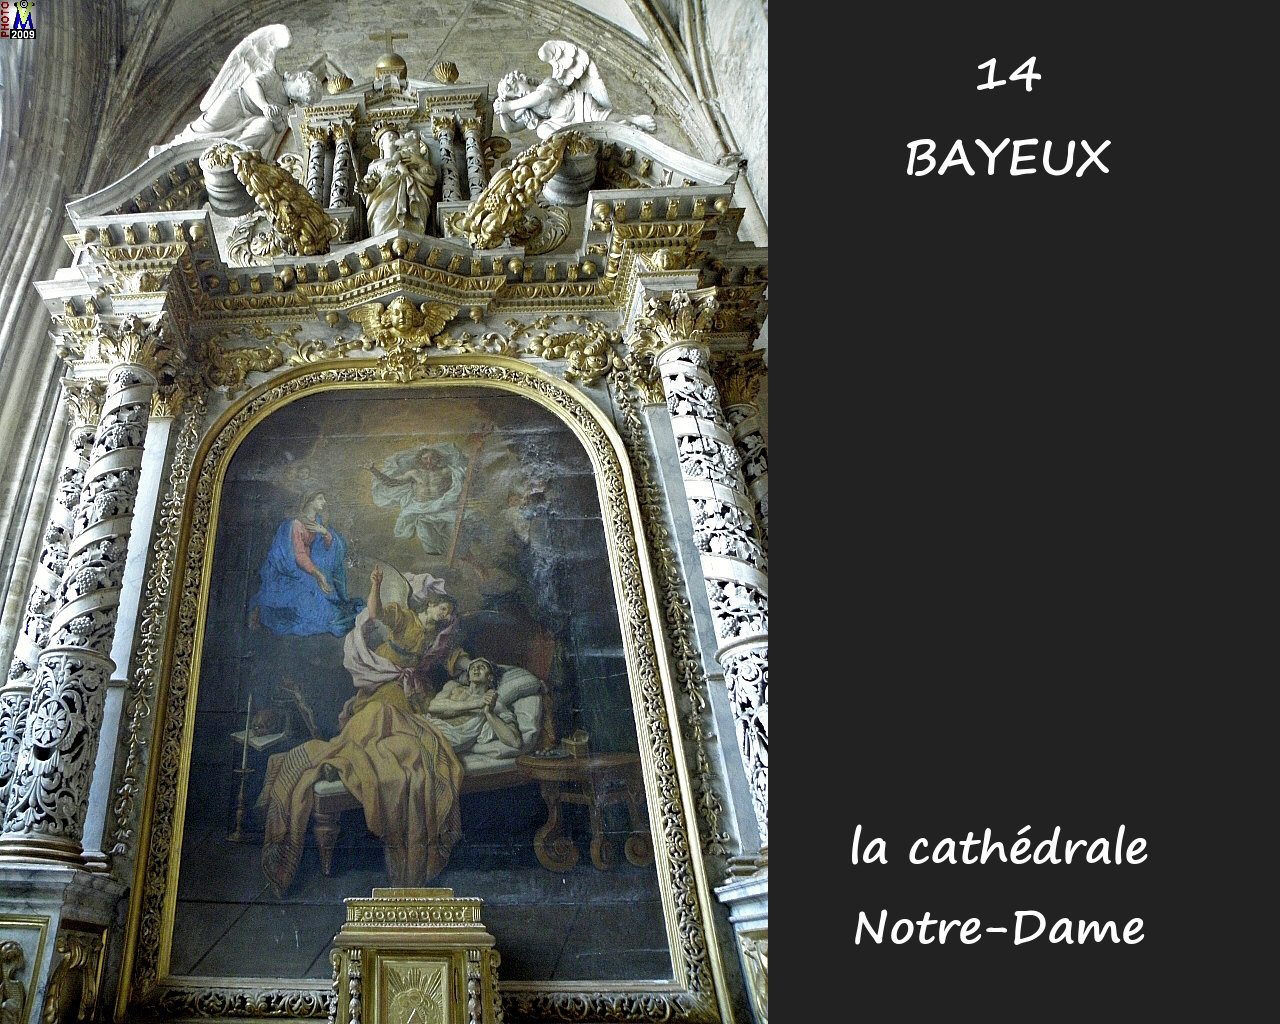 14BAYEUX_cathedrale_230.jpg